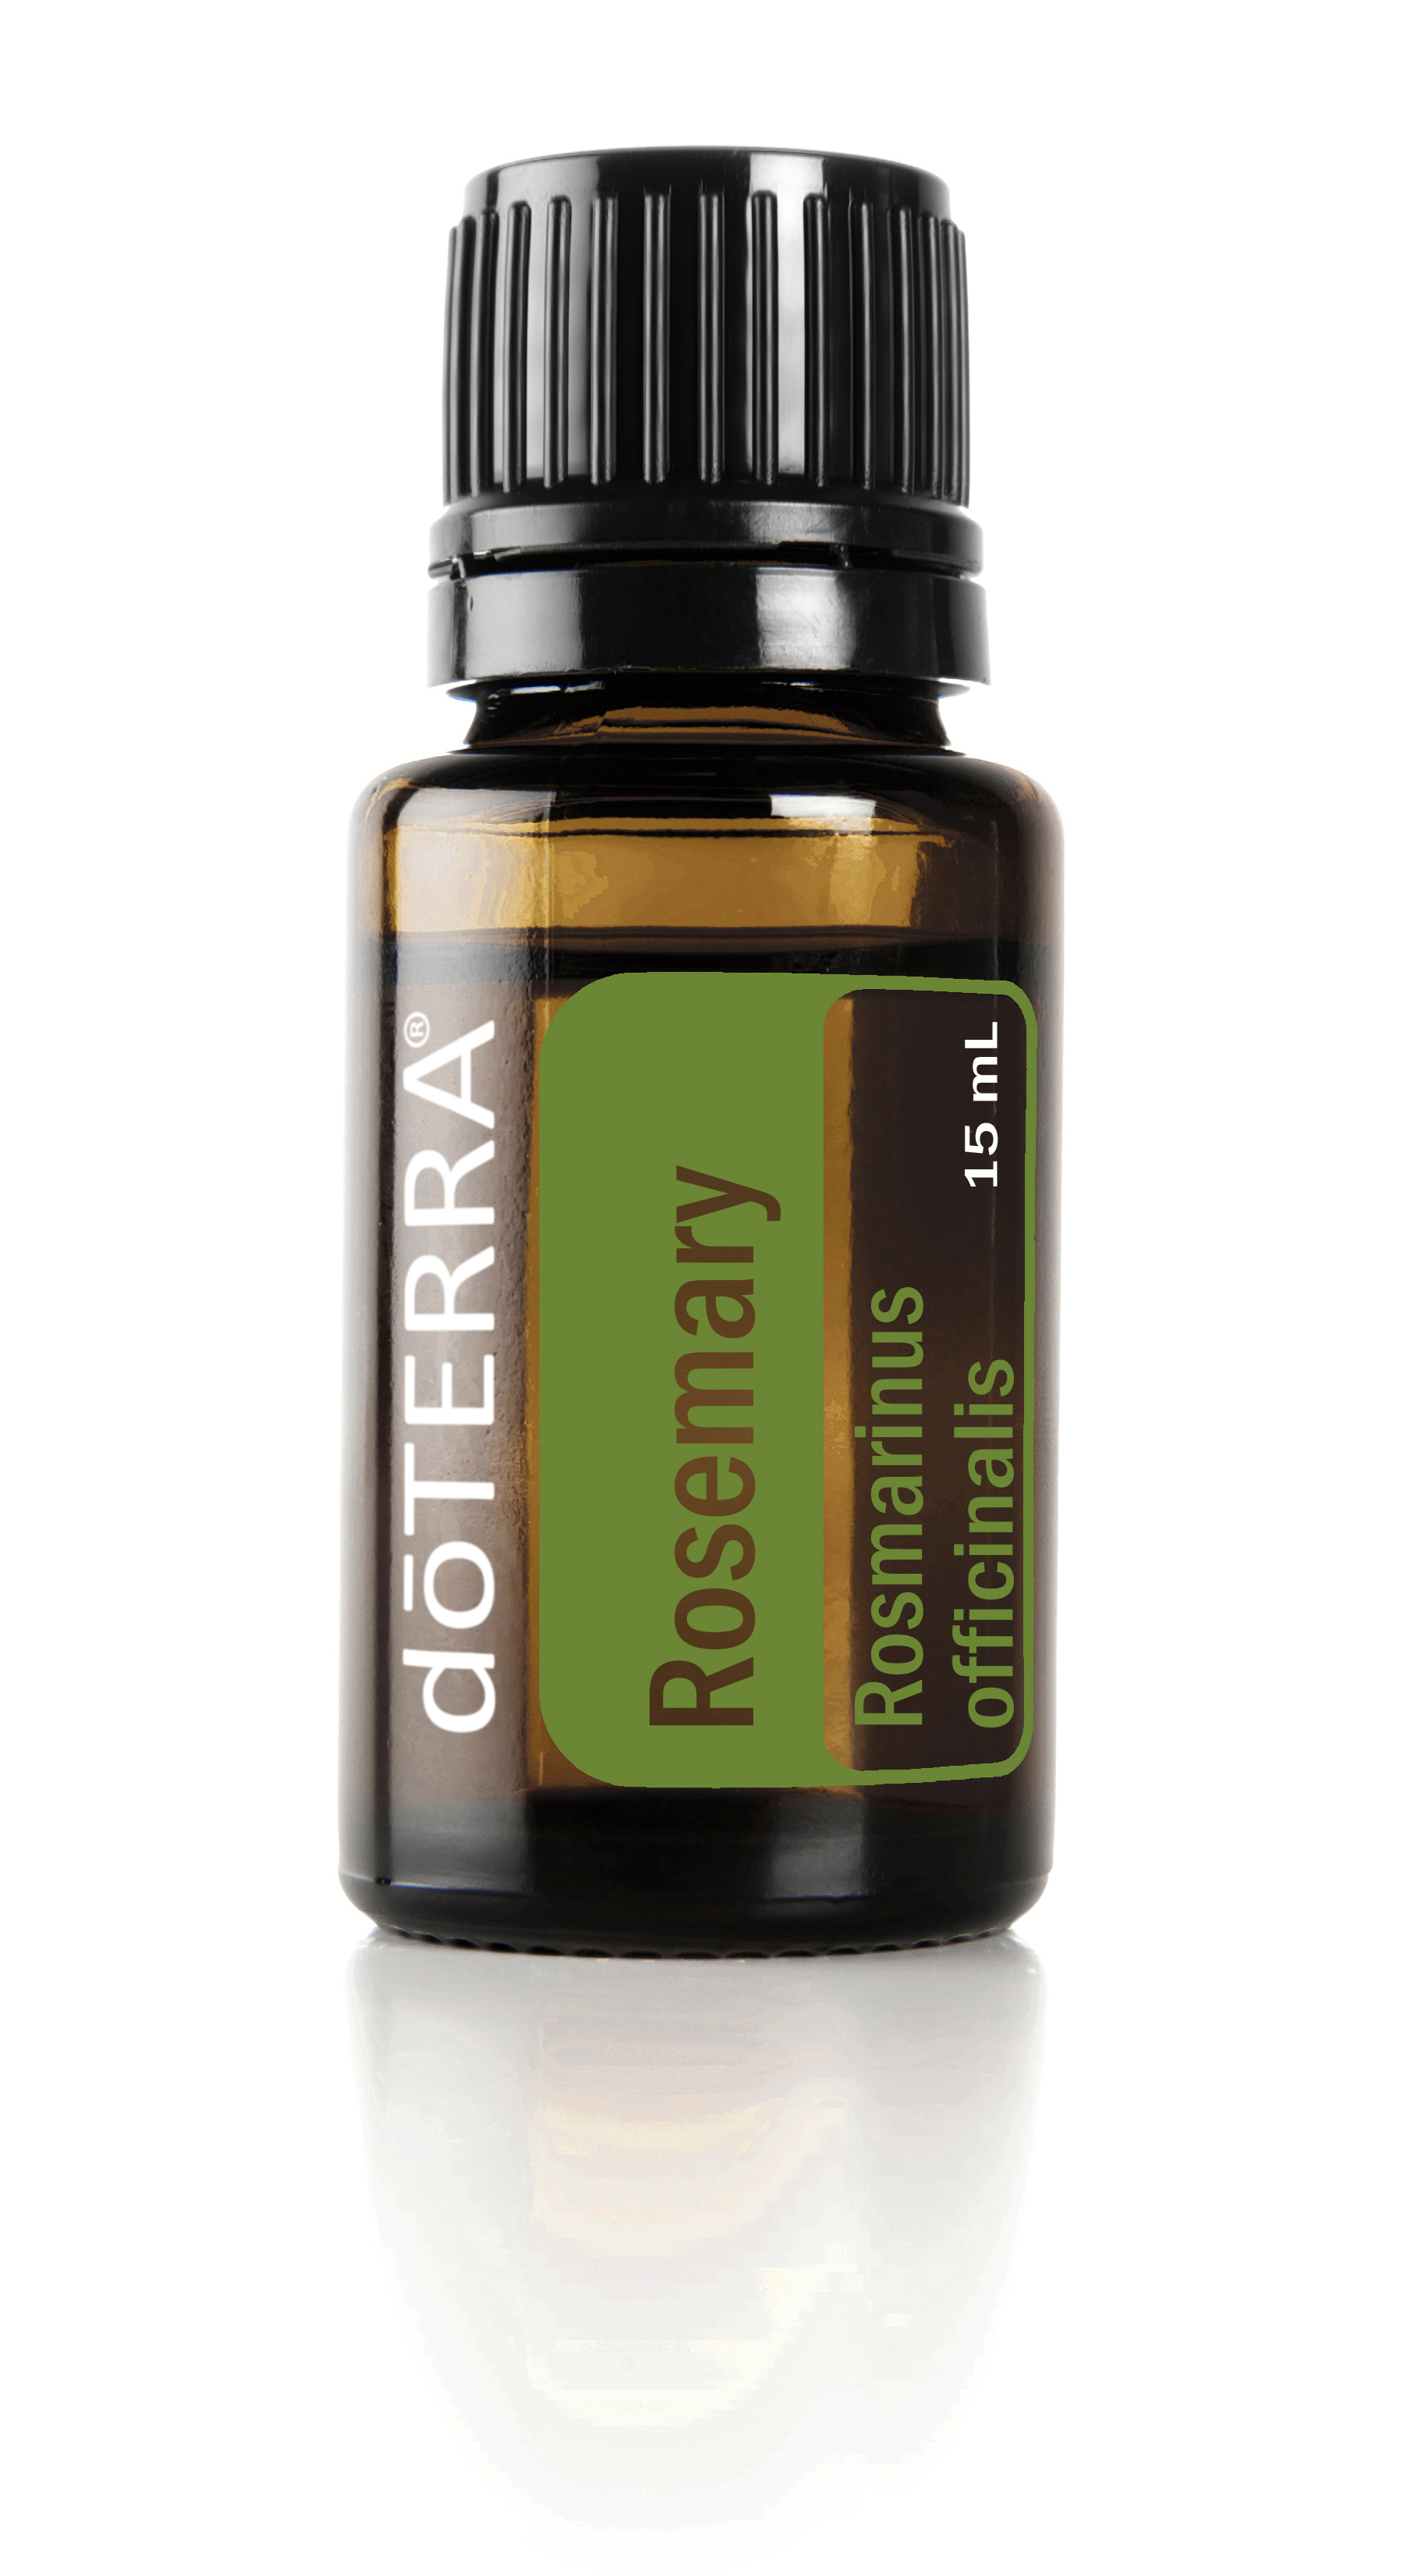 Rosemary Oil 15mL By dōTERRA